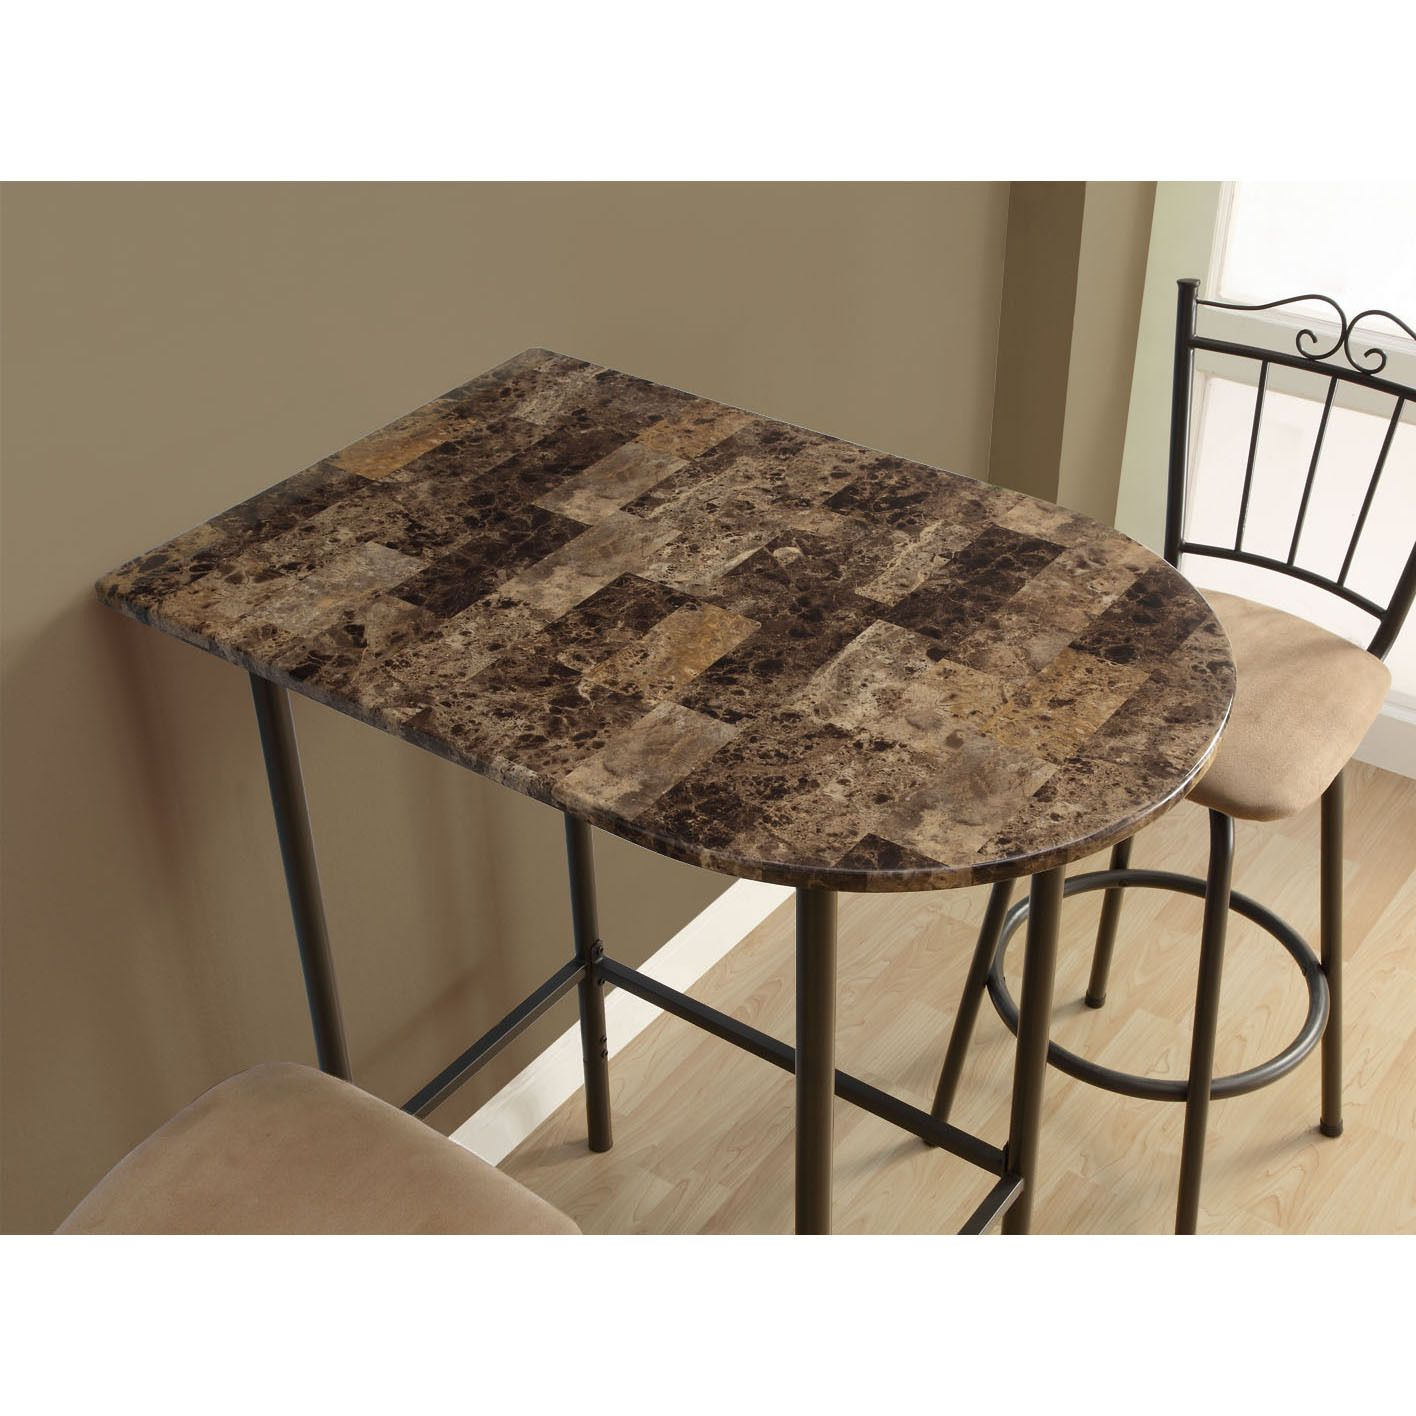 cappuccino marble inch spacesaver bar table monarch specialties top accent side coffee metal brown round vinyl tablecloth teak patio foyer with storage ashley center transition